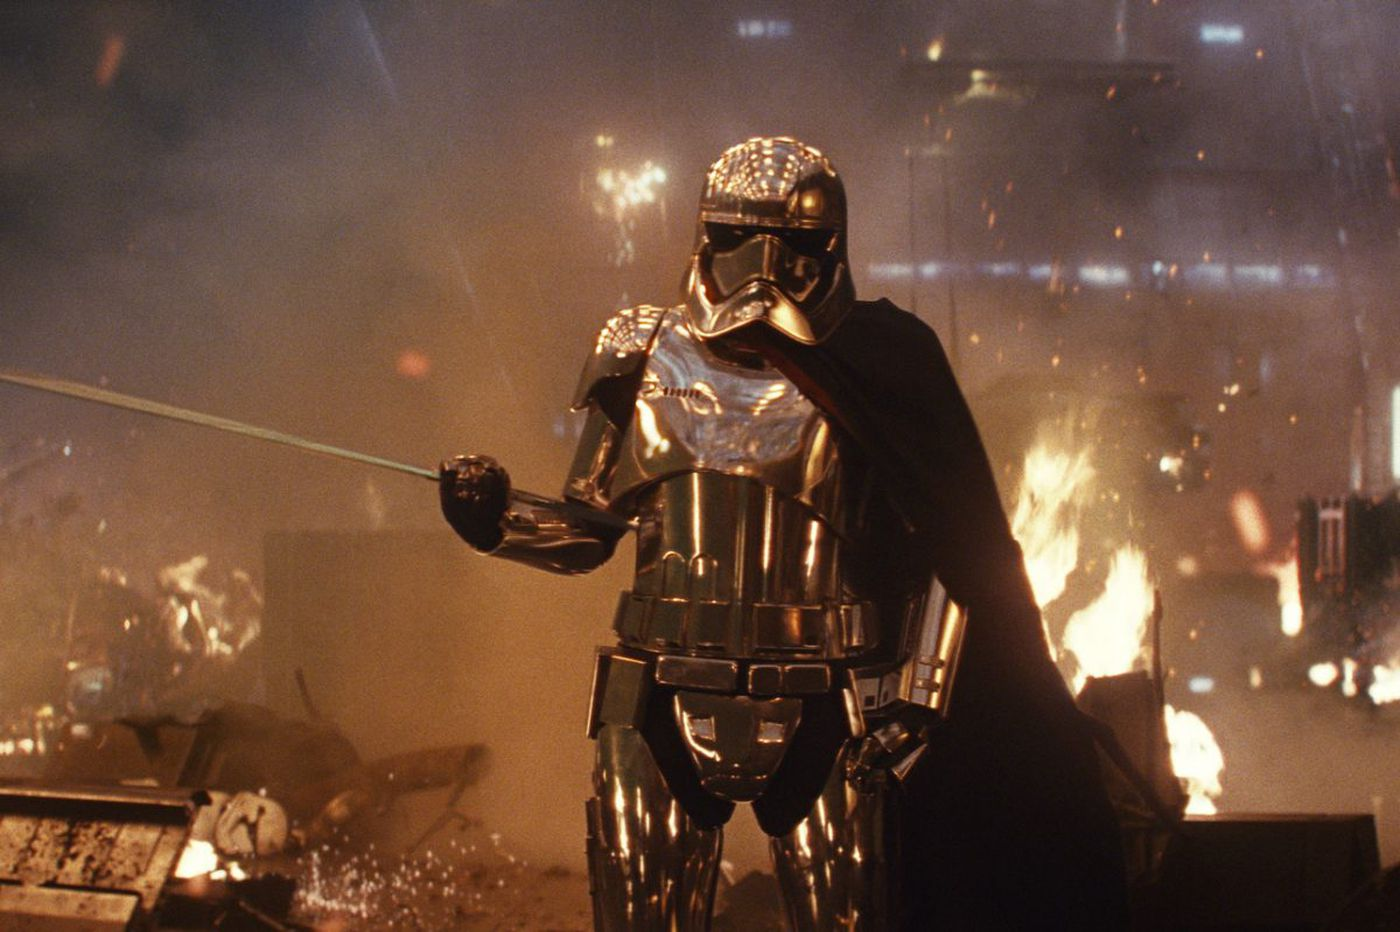 What 'Star Wars: The Last Jedi' got wrong (and right). An astronomer weighs in.